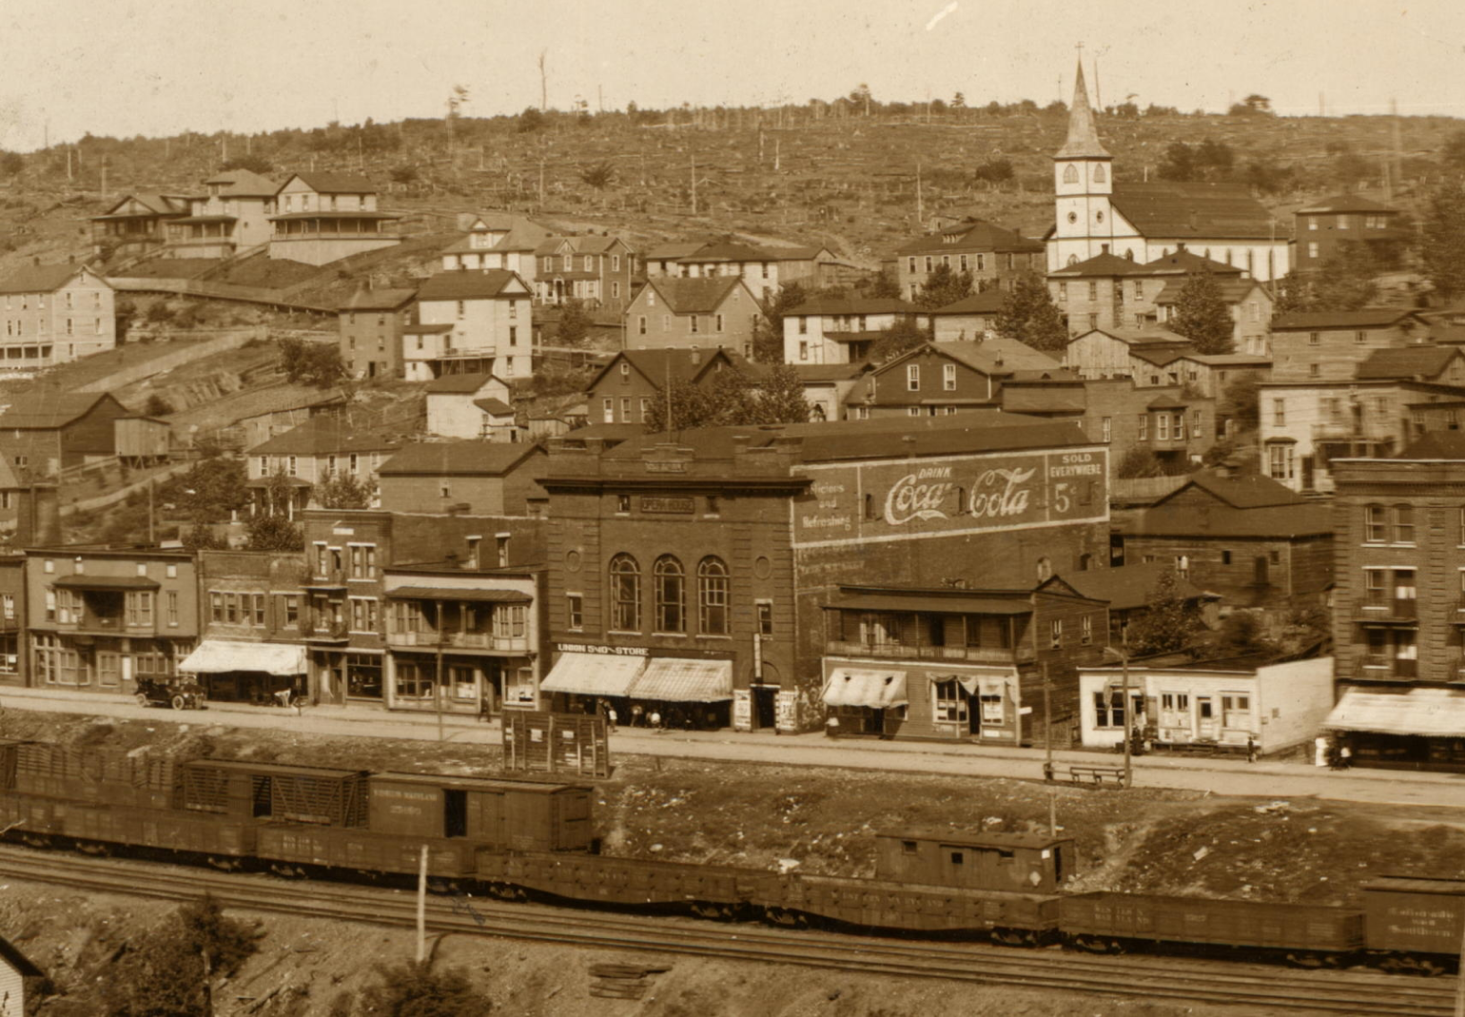 Front Street in Thomas, ca. 1914. Note the clear-cut hillside behind Thomas and the rail line on the riverfront. This photo was taken just before Hiram Cottrill sold the building to the Sutton family (see below).